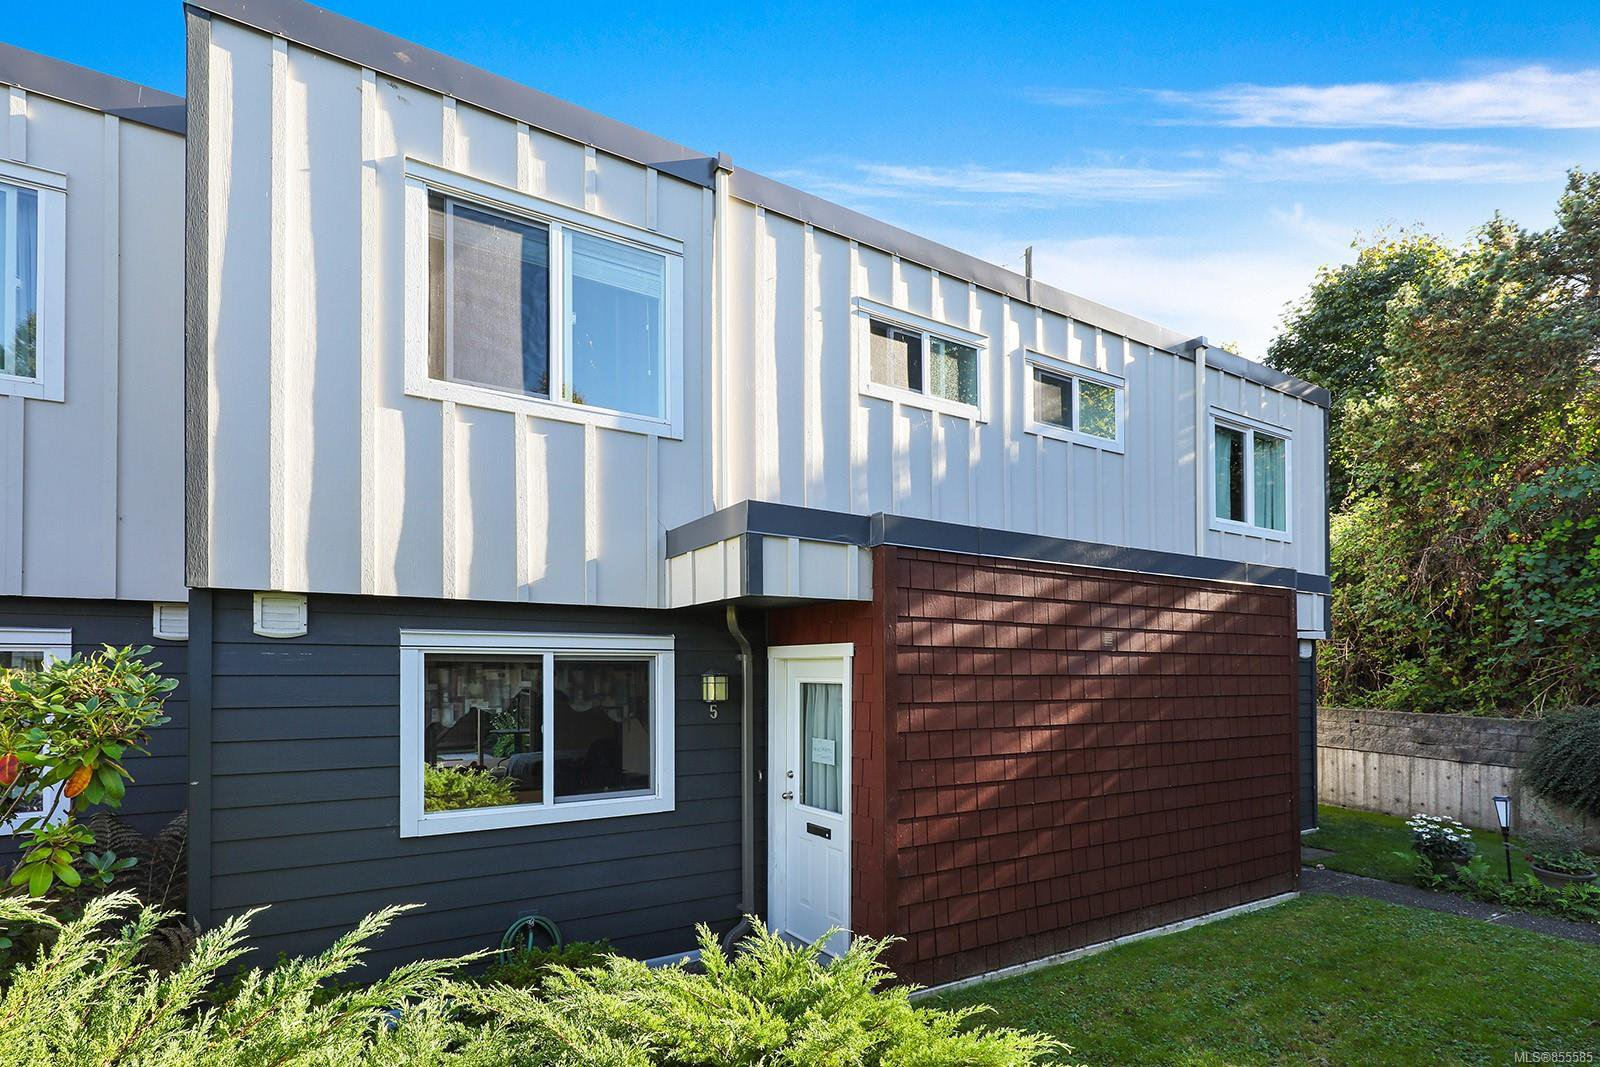 Main Photo: 5 255 Anderton Ave in : CV Courtenay City Row/Townhouse for sale (Comox Valley)  : MLS®# 855585